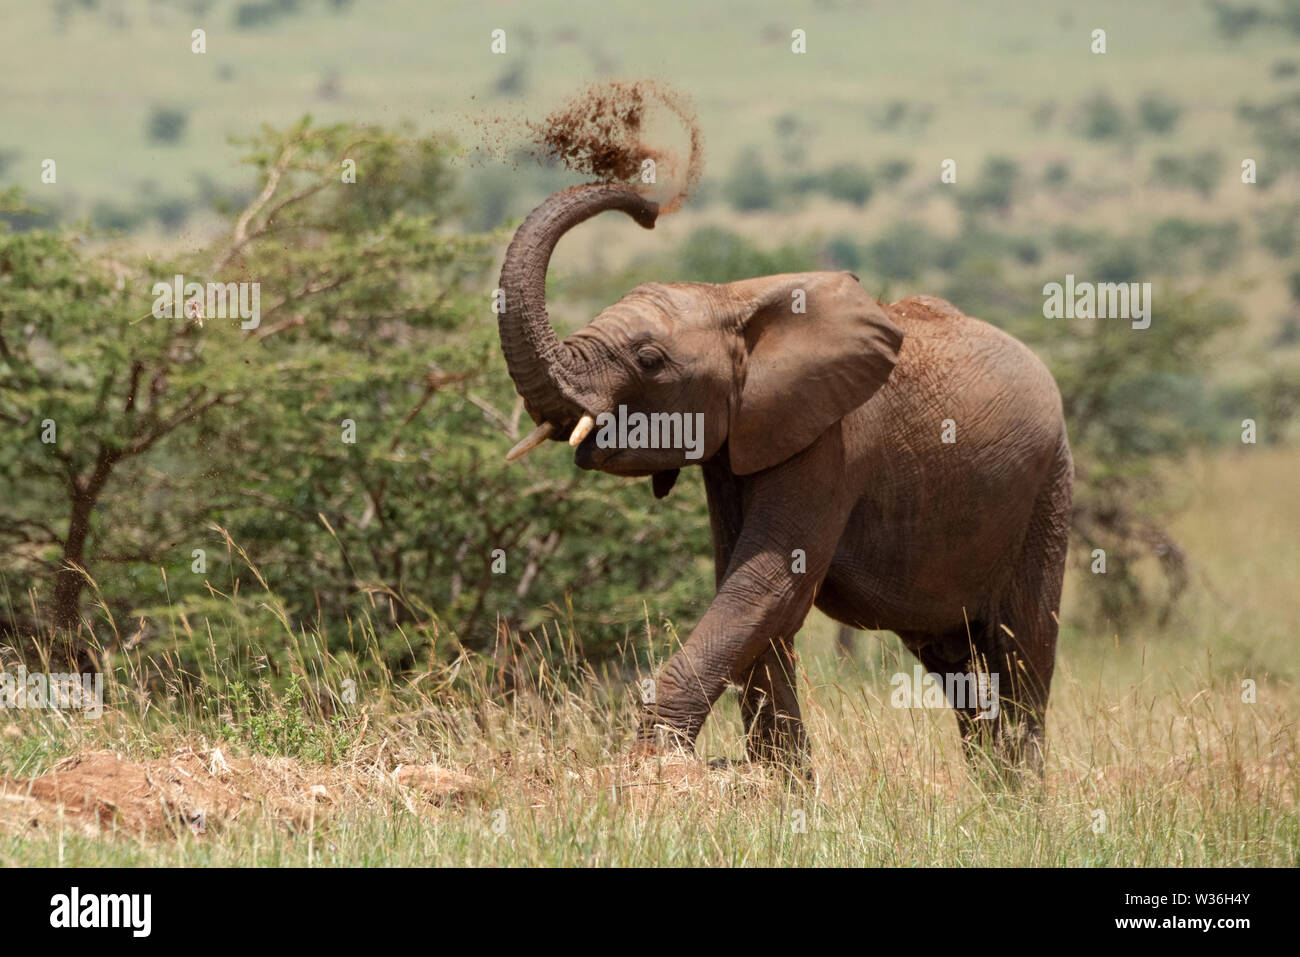 African elephant throws earth over its head - Stock Image